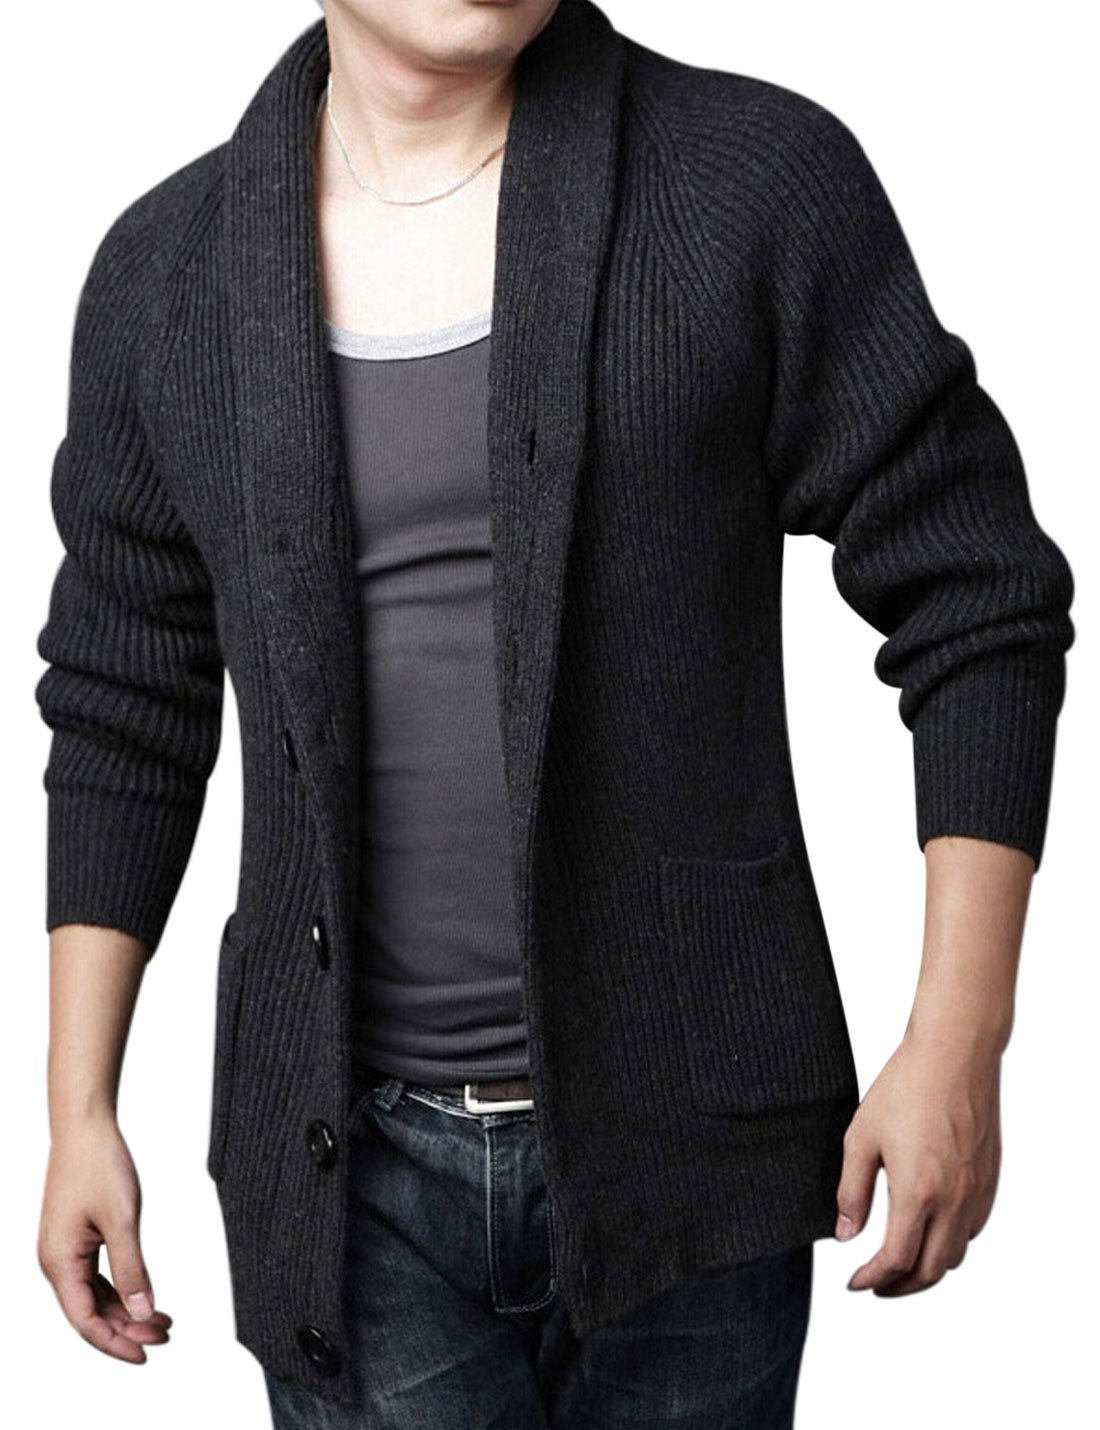 44127ec46b Yeokou Men s Casual Slim Thick Knitted Shawl Collar Cardigan Sweaters  Pockets